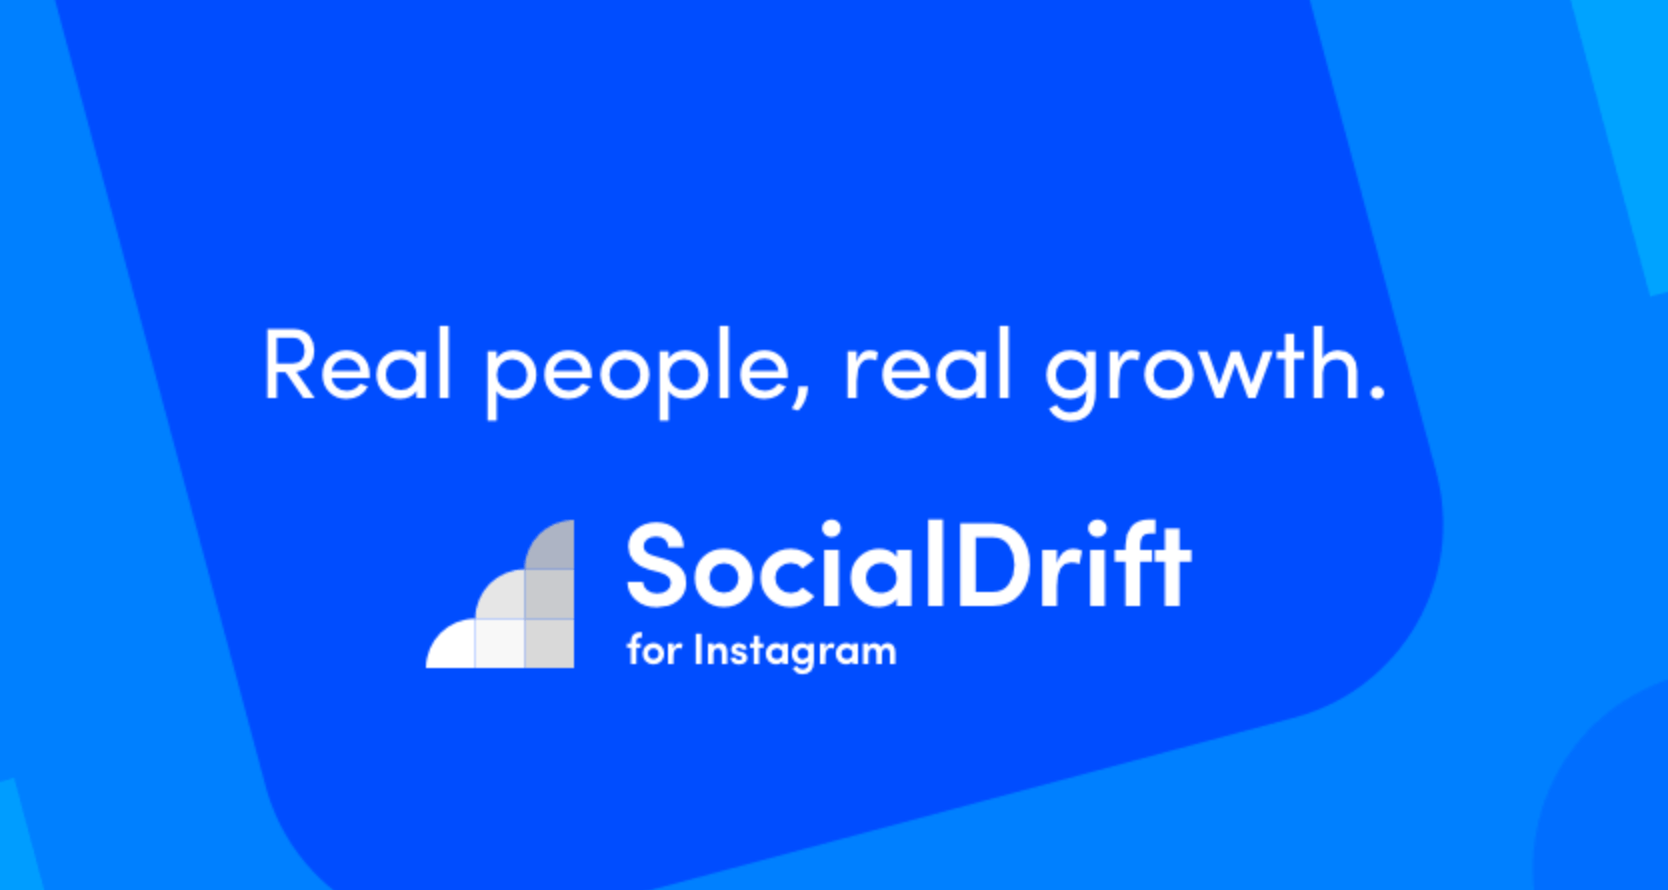 socialdrift-review - Social Media Tools For Marketing